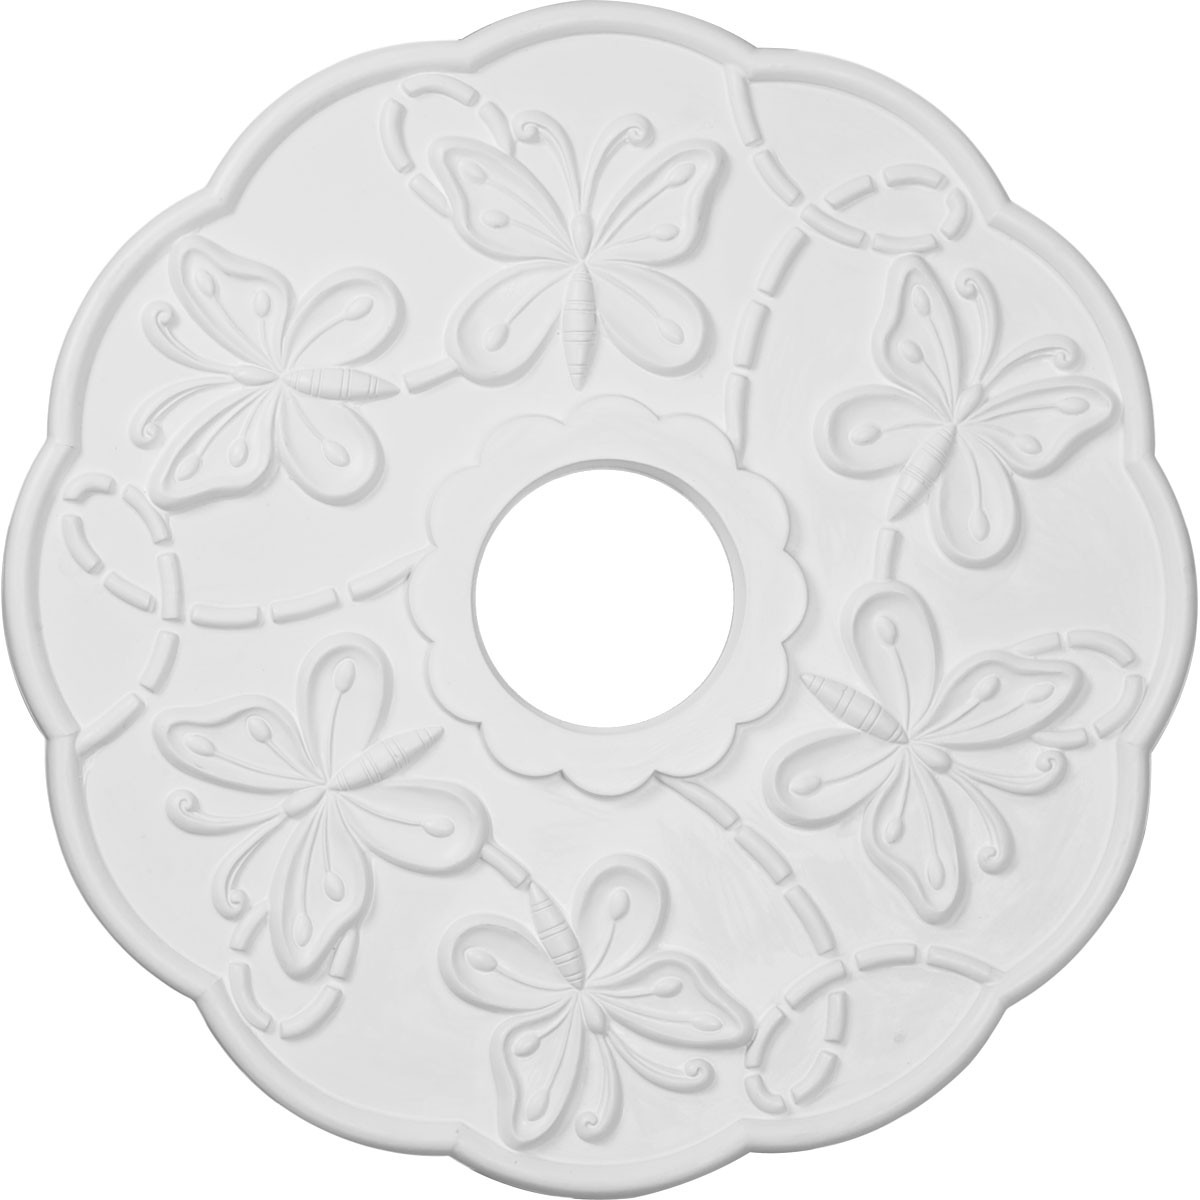 """EM-CM17TS - 17 7/8""""OD x 3 7/8""""ID x 1""""P Terrones Butterfly Ceiling Medallion (Fits Canopies up to 3 7/8"""")"""